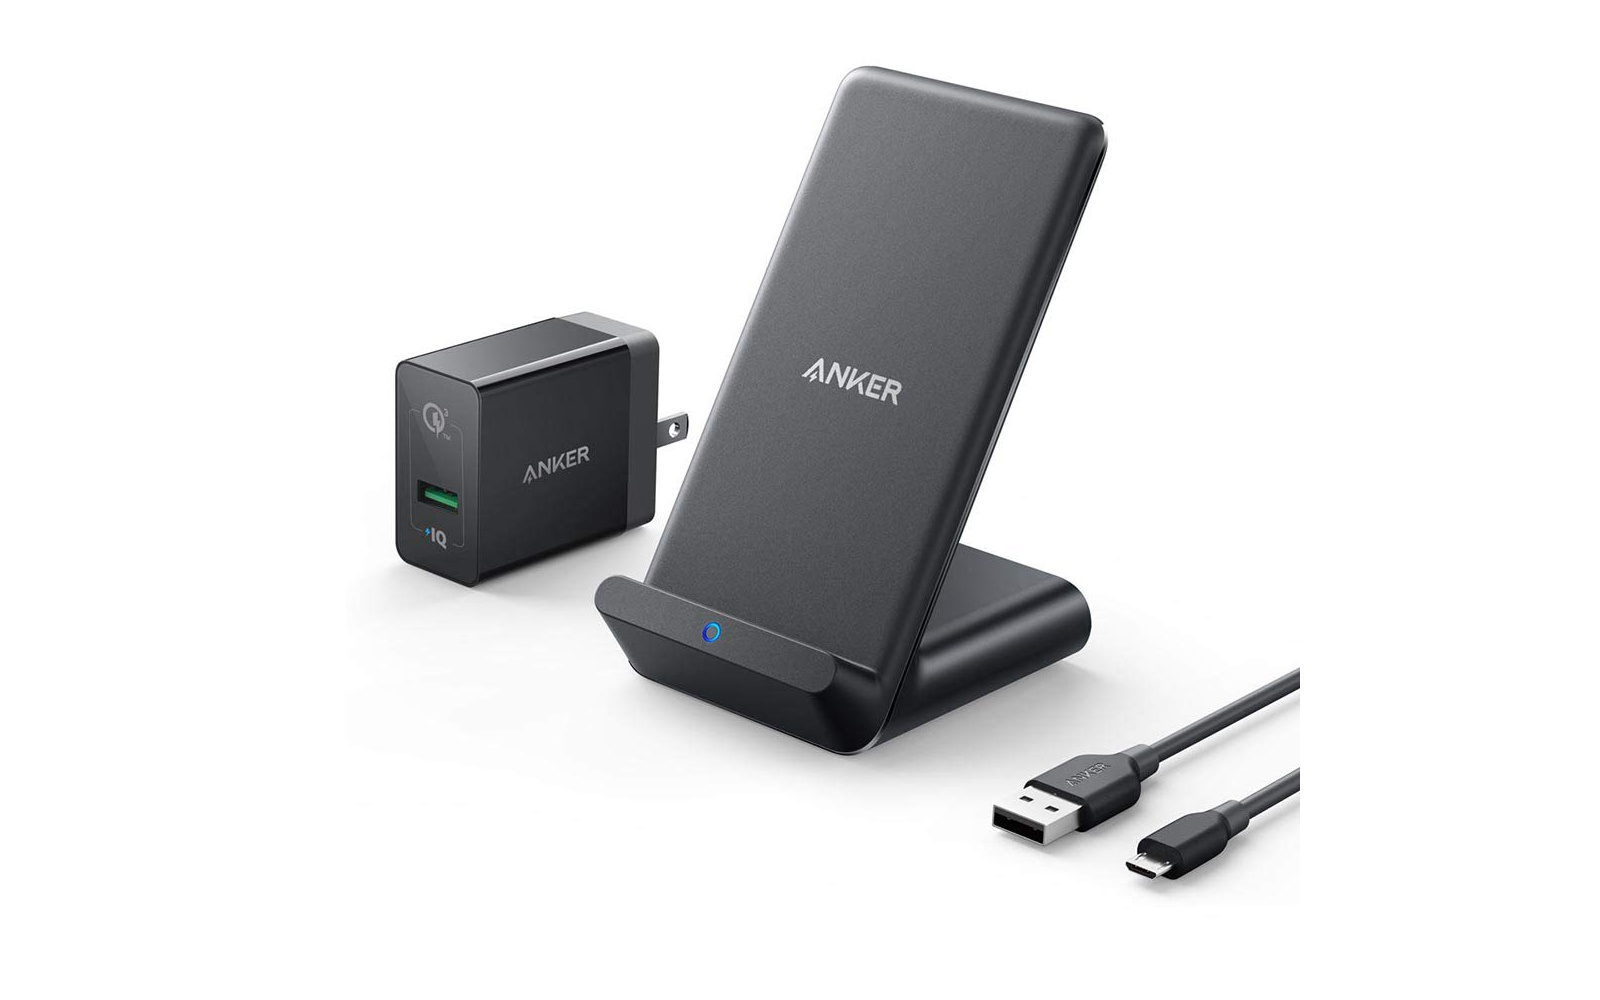 Anker PowerCore 7 5 charger